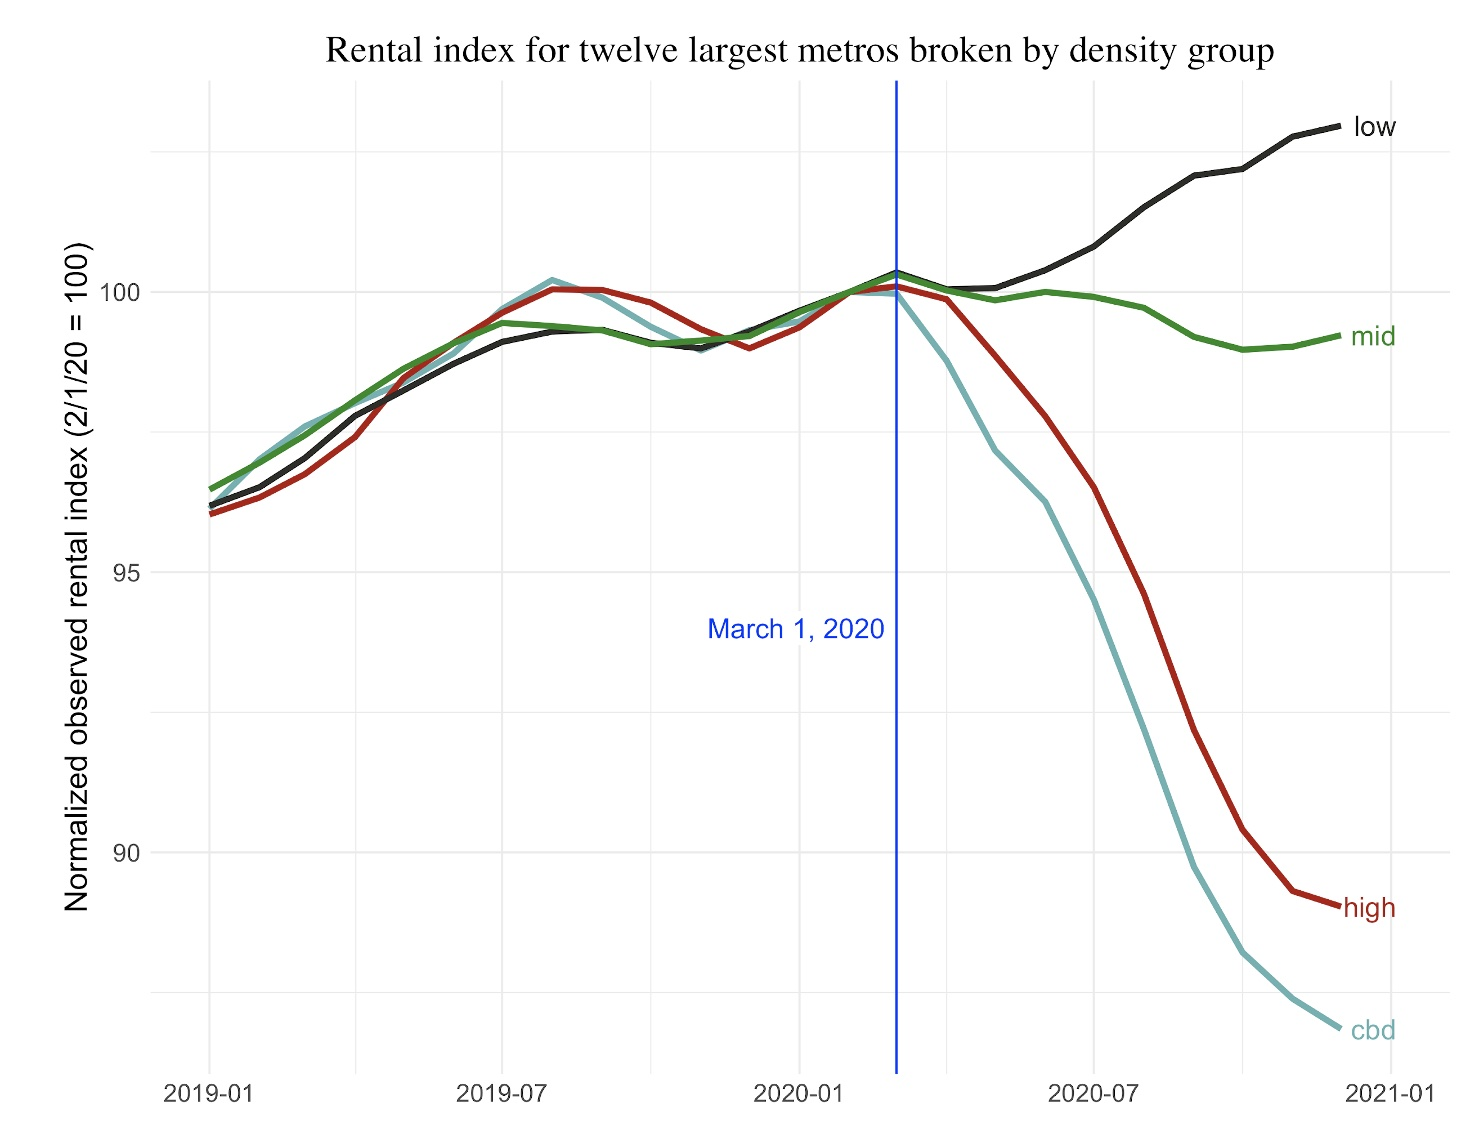 Rental index for 2020 and 2021